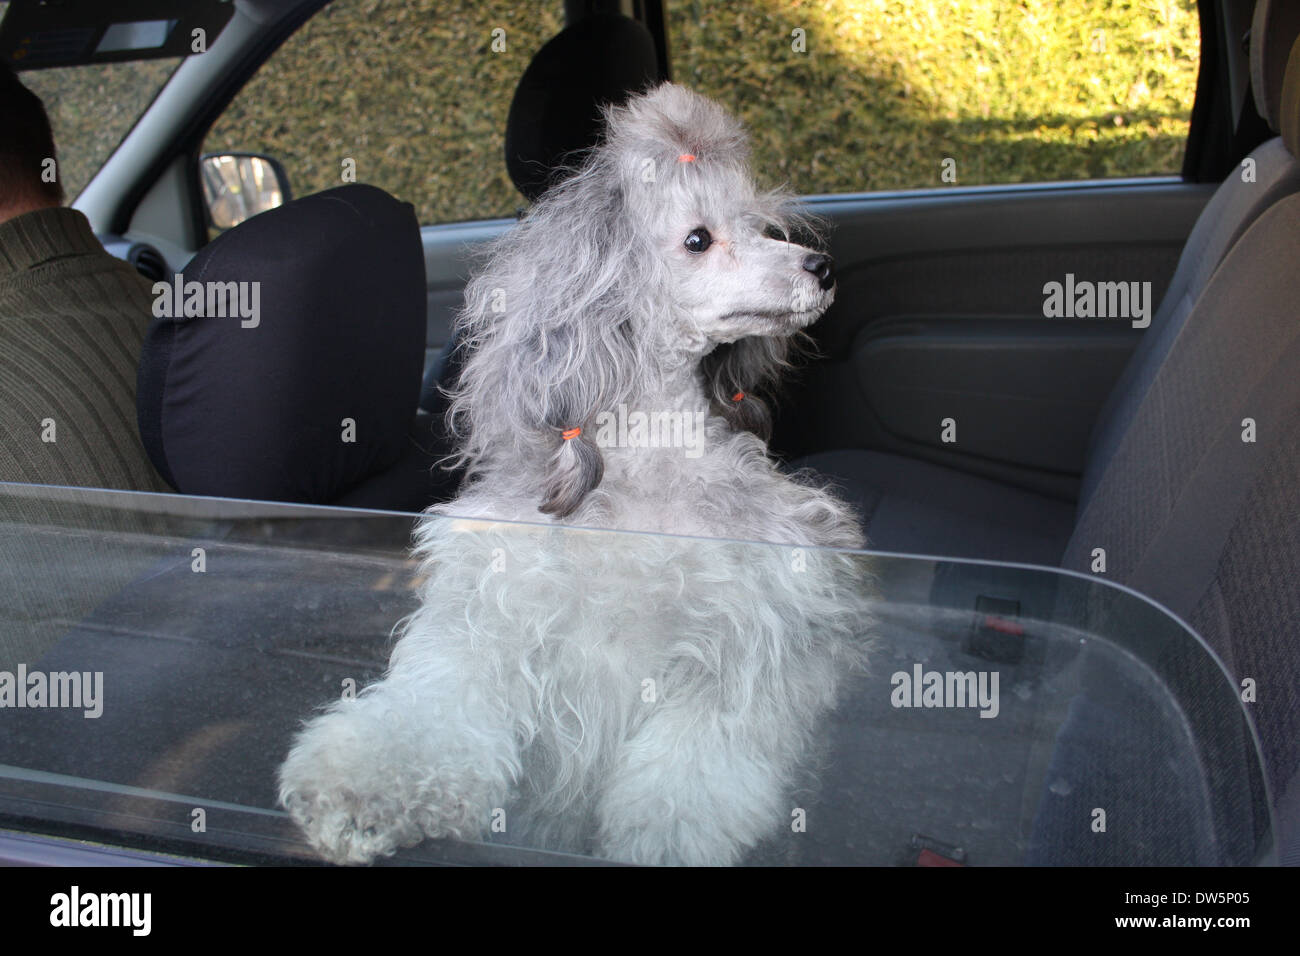 /Dog Poodle / Pudel / Caniche , Miniature / Dwarf / Nain /  adult looking out of car window - Stock Image